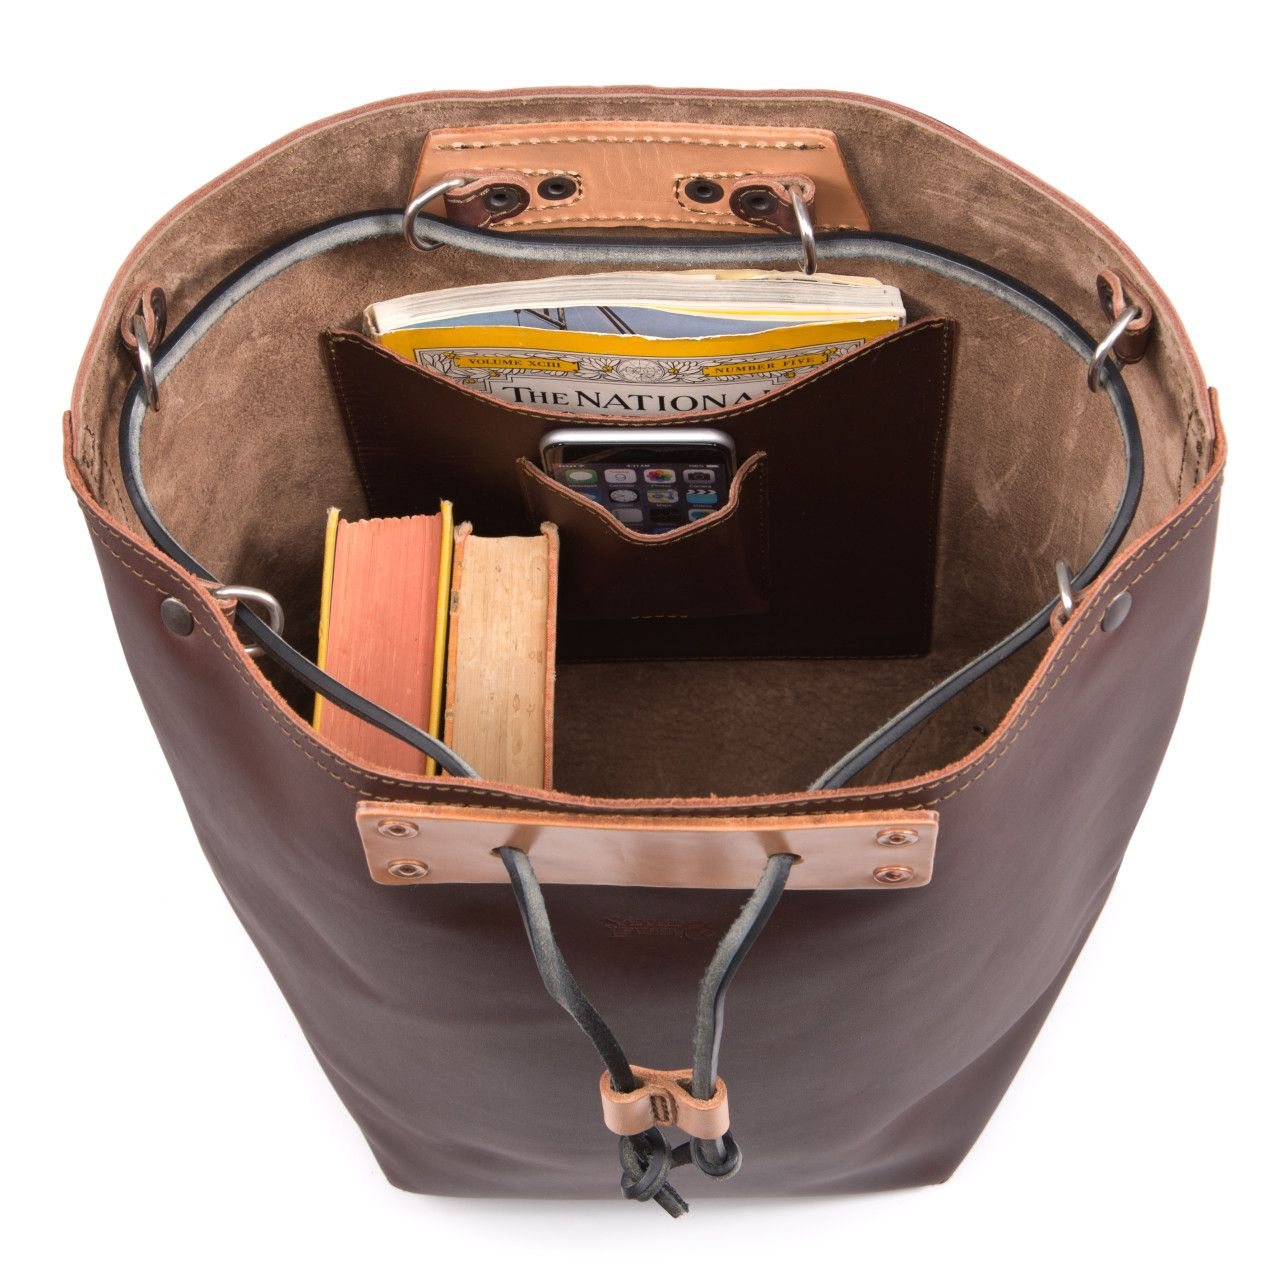 Two books, iphone, map in the inside of the bucket drawstring leather backpack in chestnut leather